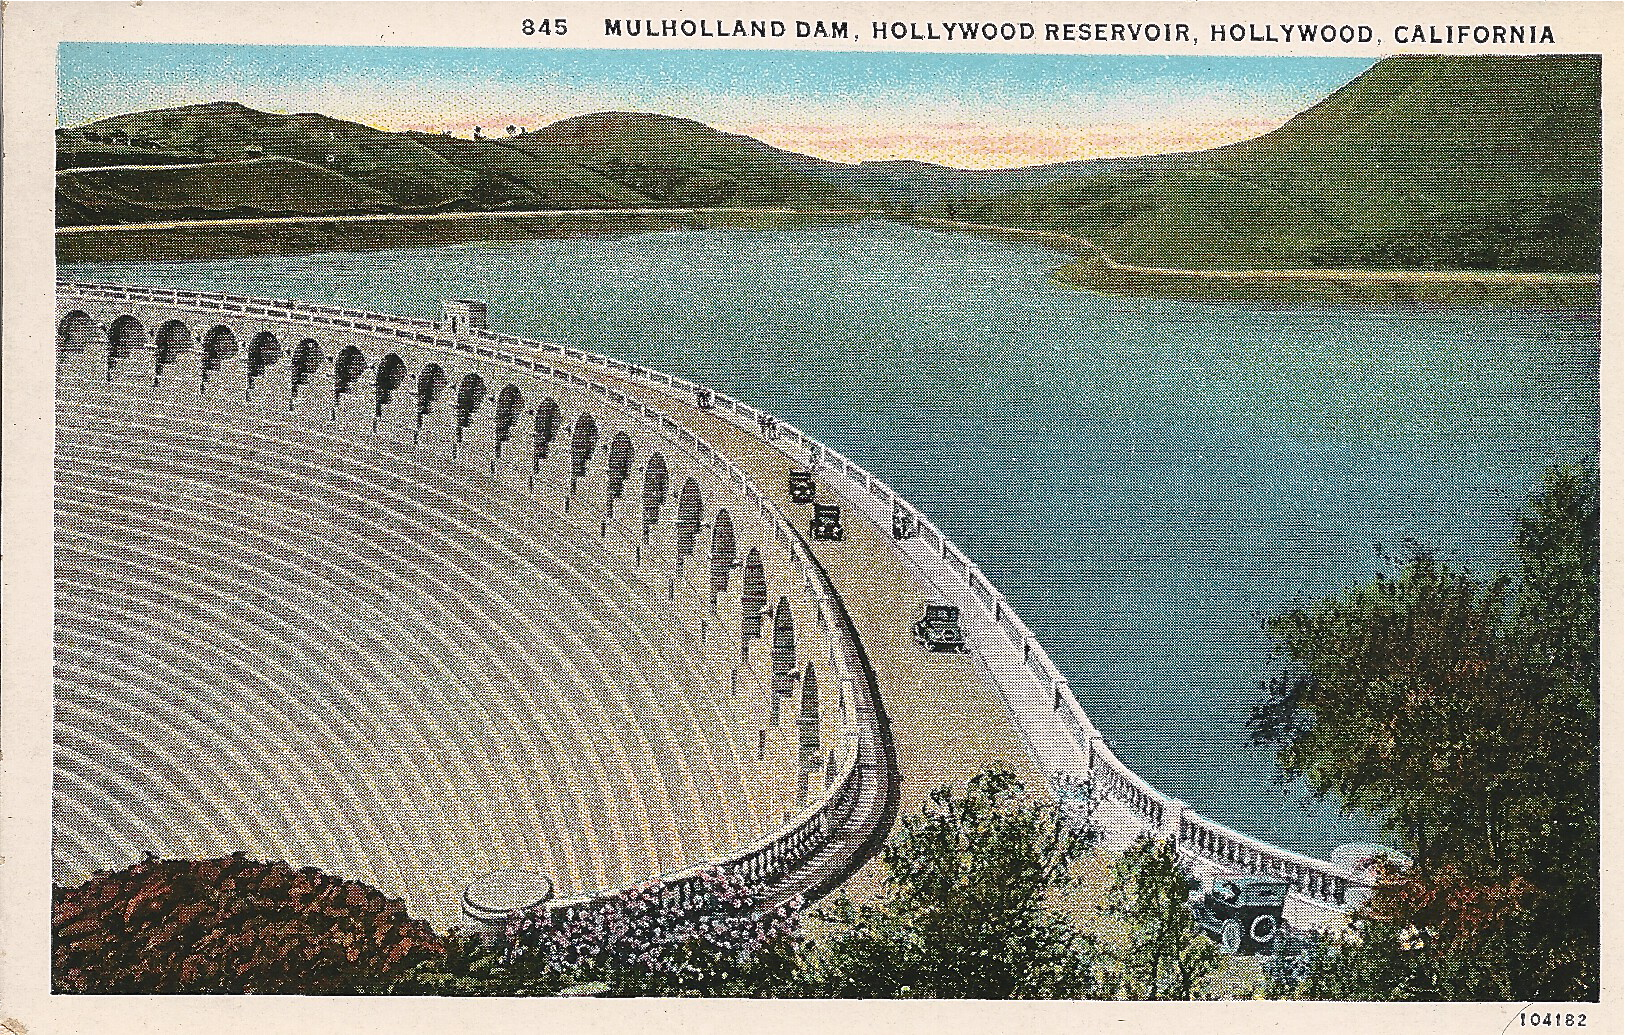 Mulholland Dam/Hollywood Reservoir